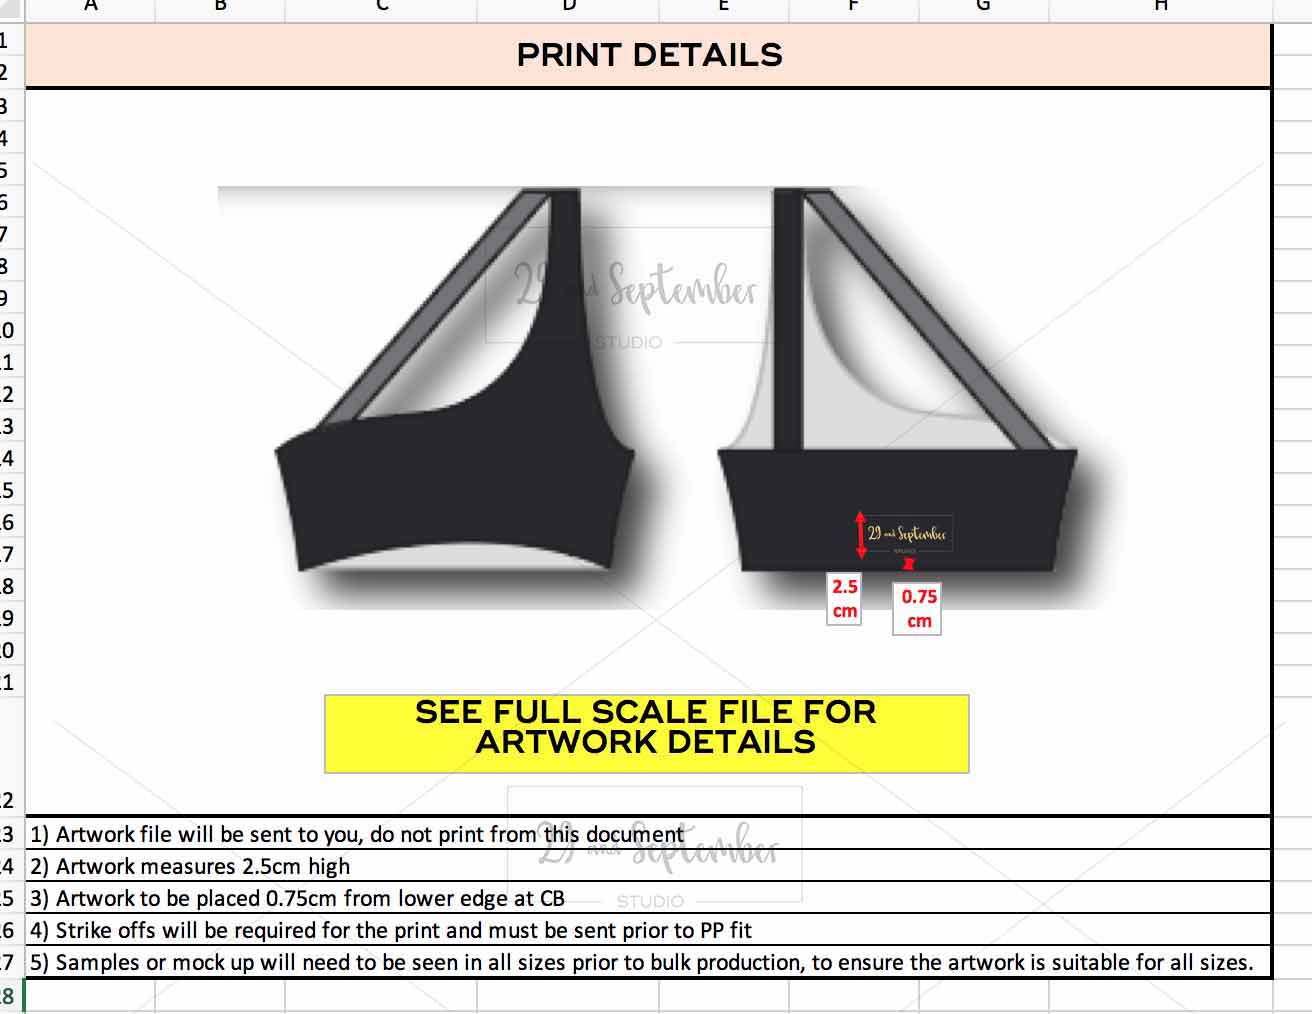 How to Use a Tech Pack for Fashion Manufacture